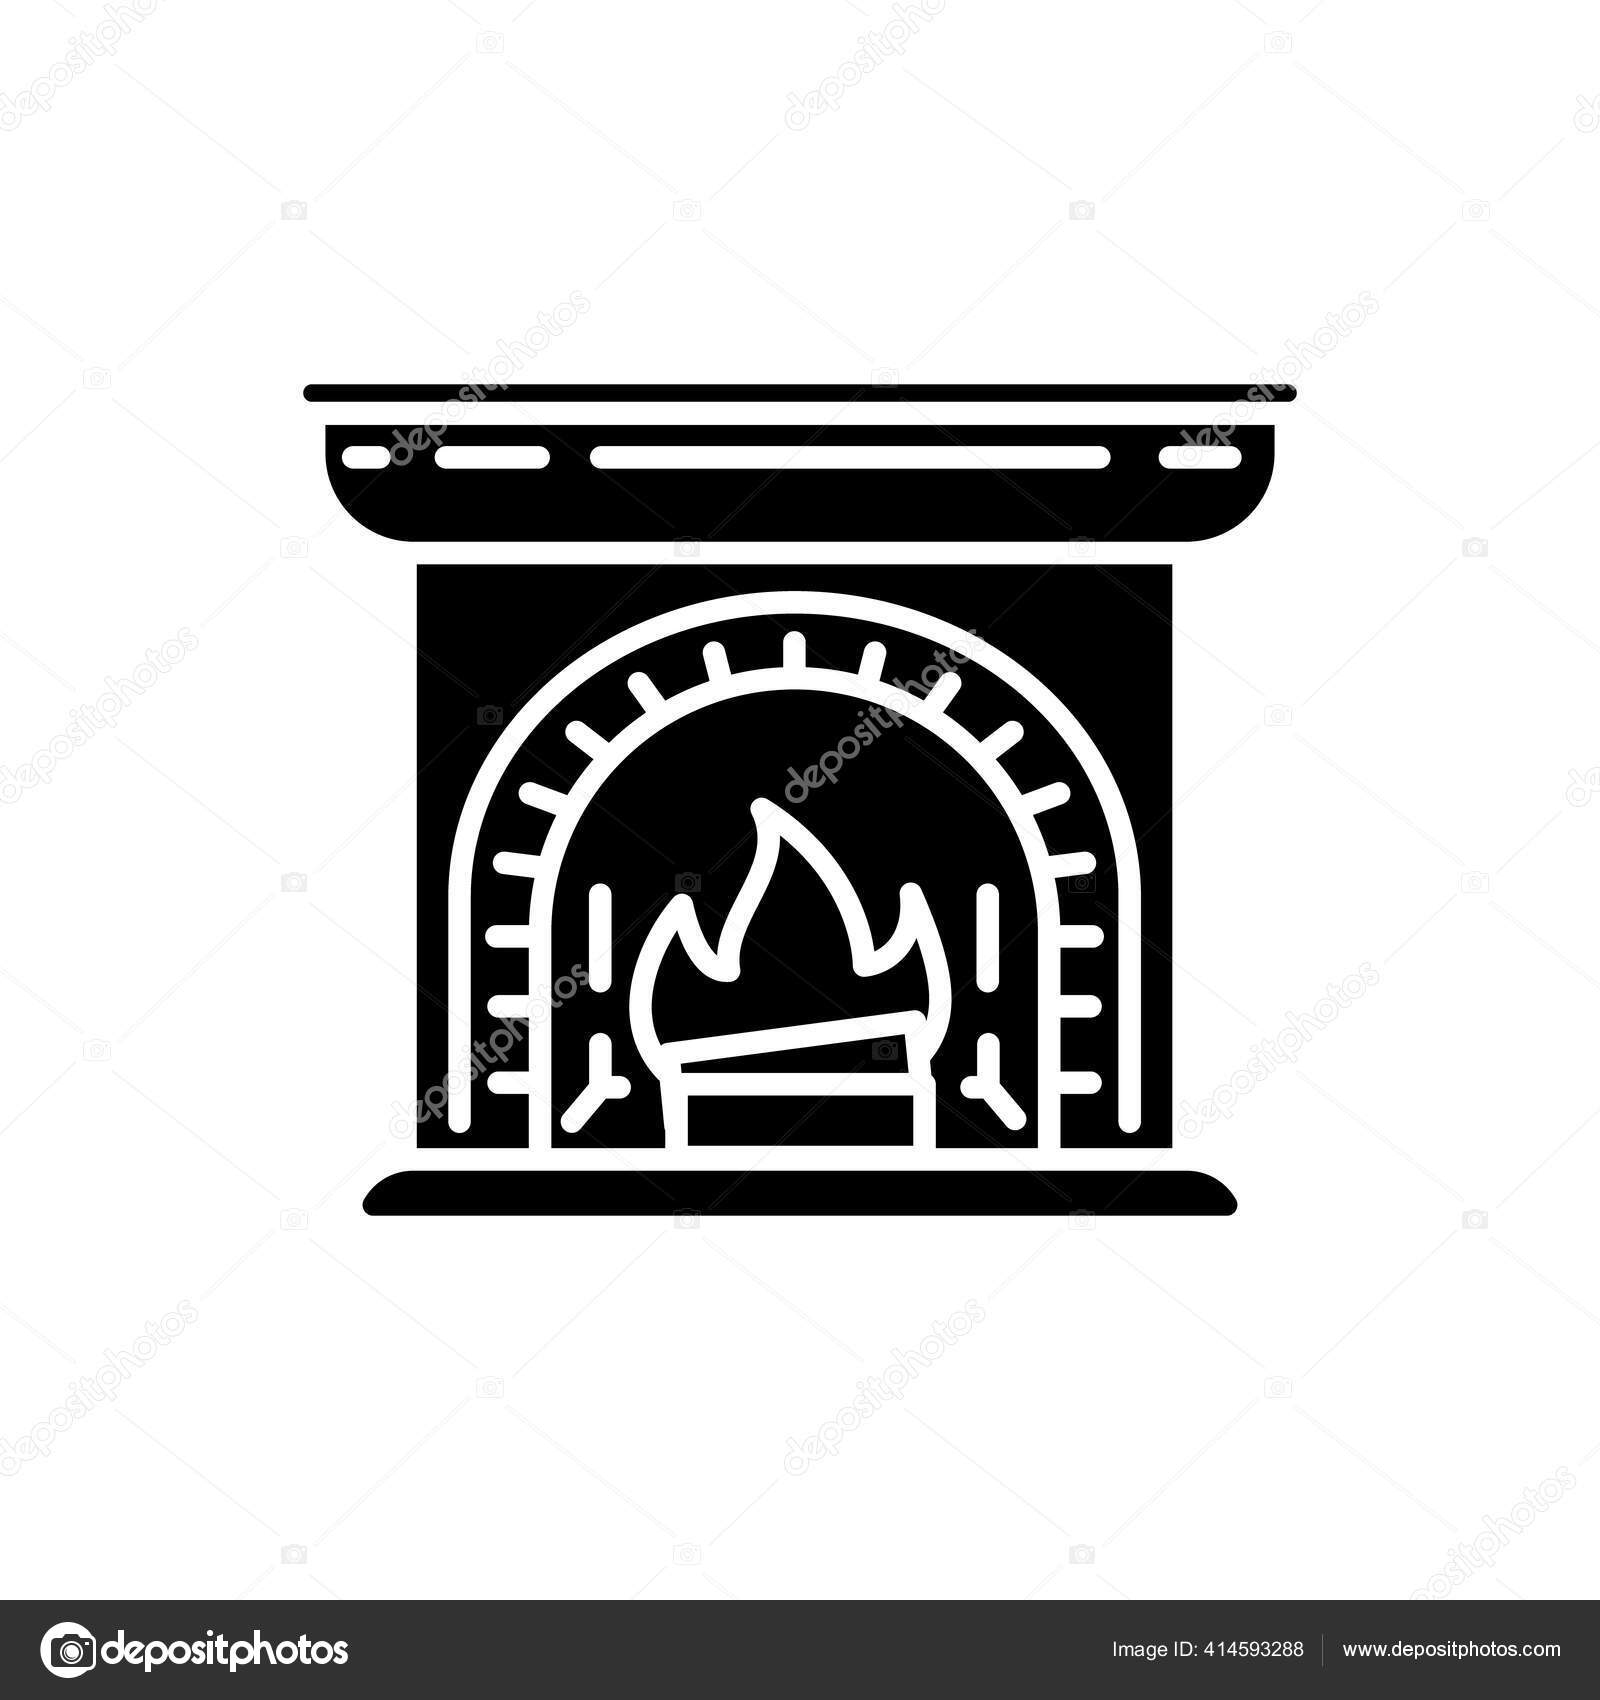 Áˆ Hearthstone Stock Vectors Royalty Free Hearthstone Card Illustrations Download On Depositphotos Recently added 35+ hearthstone logo vector images of various designs. https depositphotos com 414593288 stock illustration wood burning fireplace black glyph html